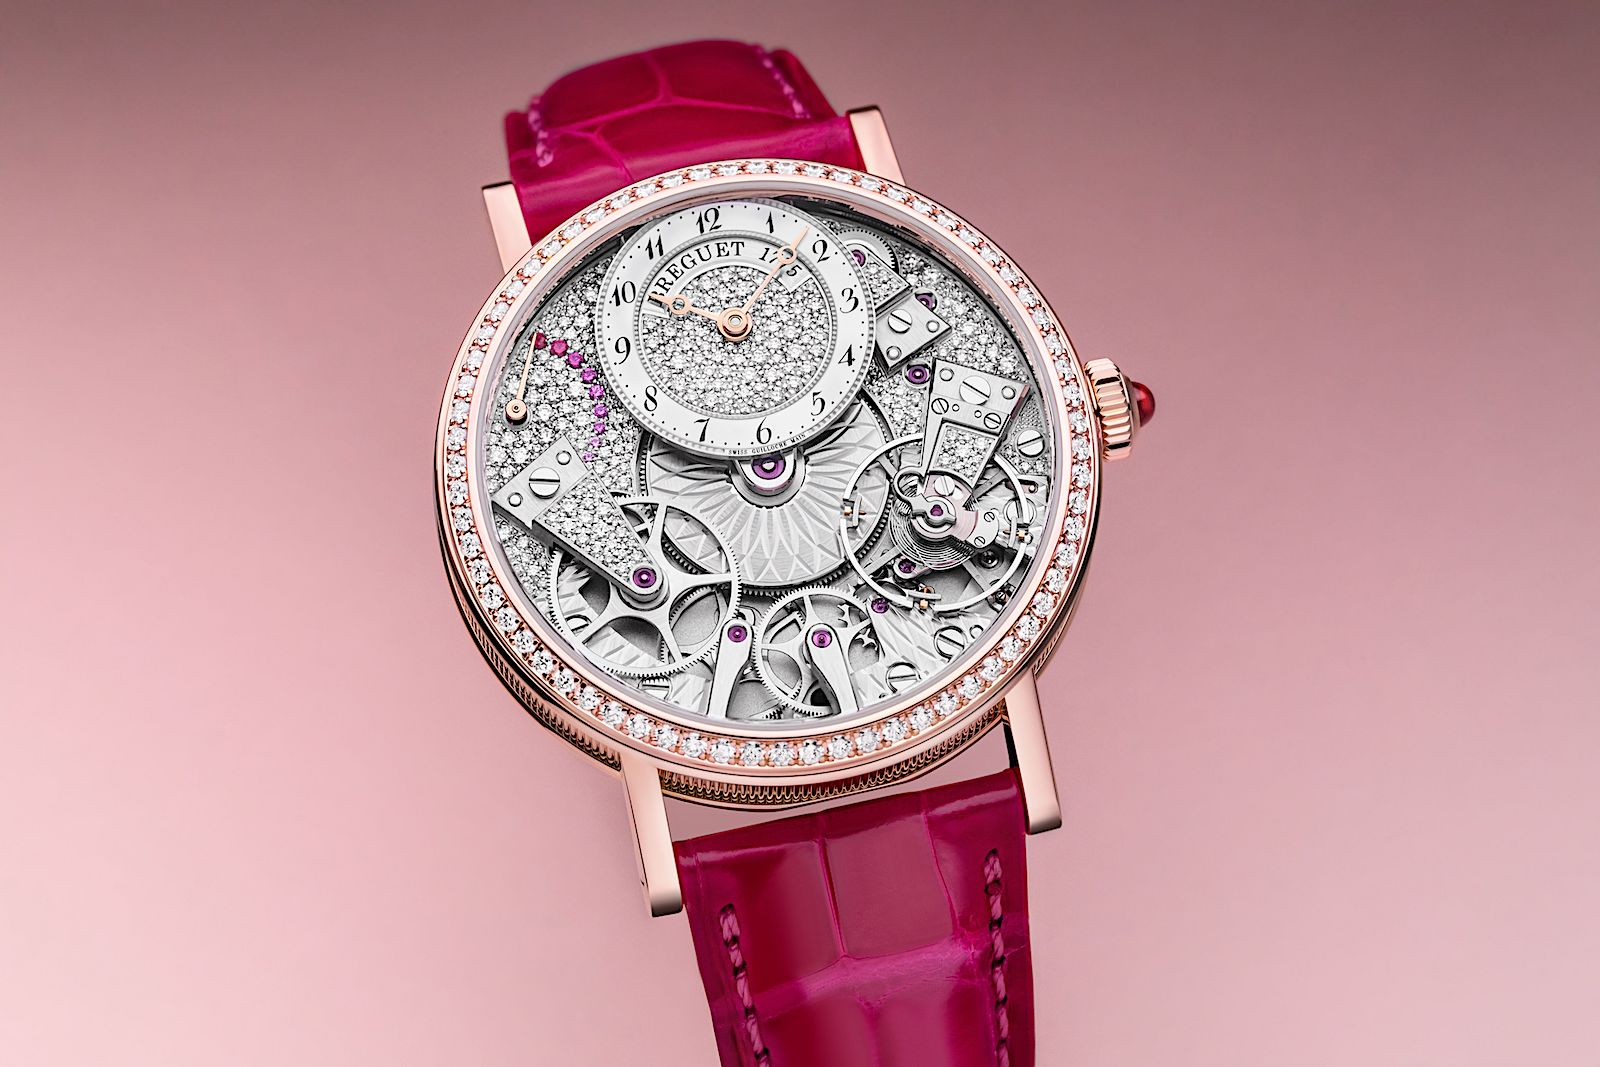 Breguet Tradition 7035 Lifestyle